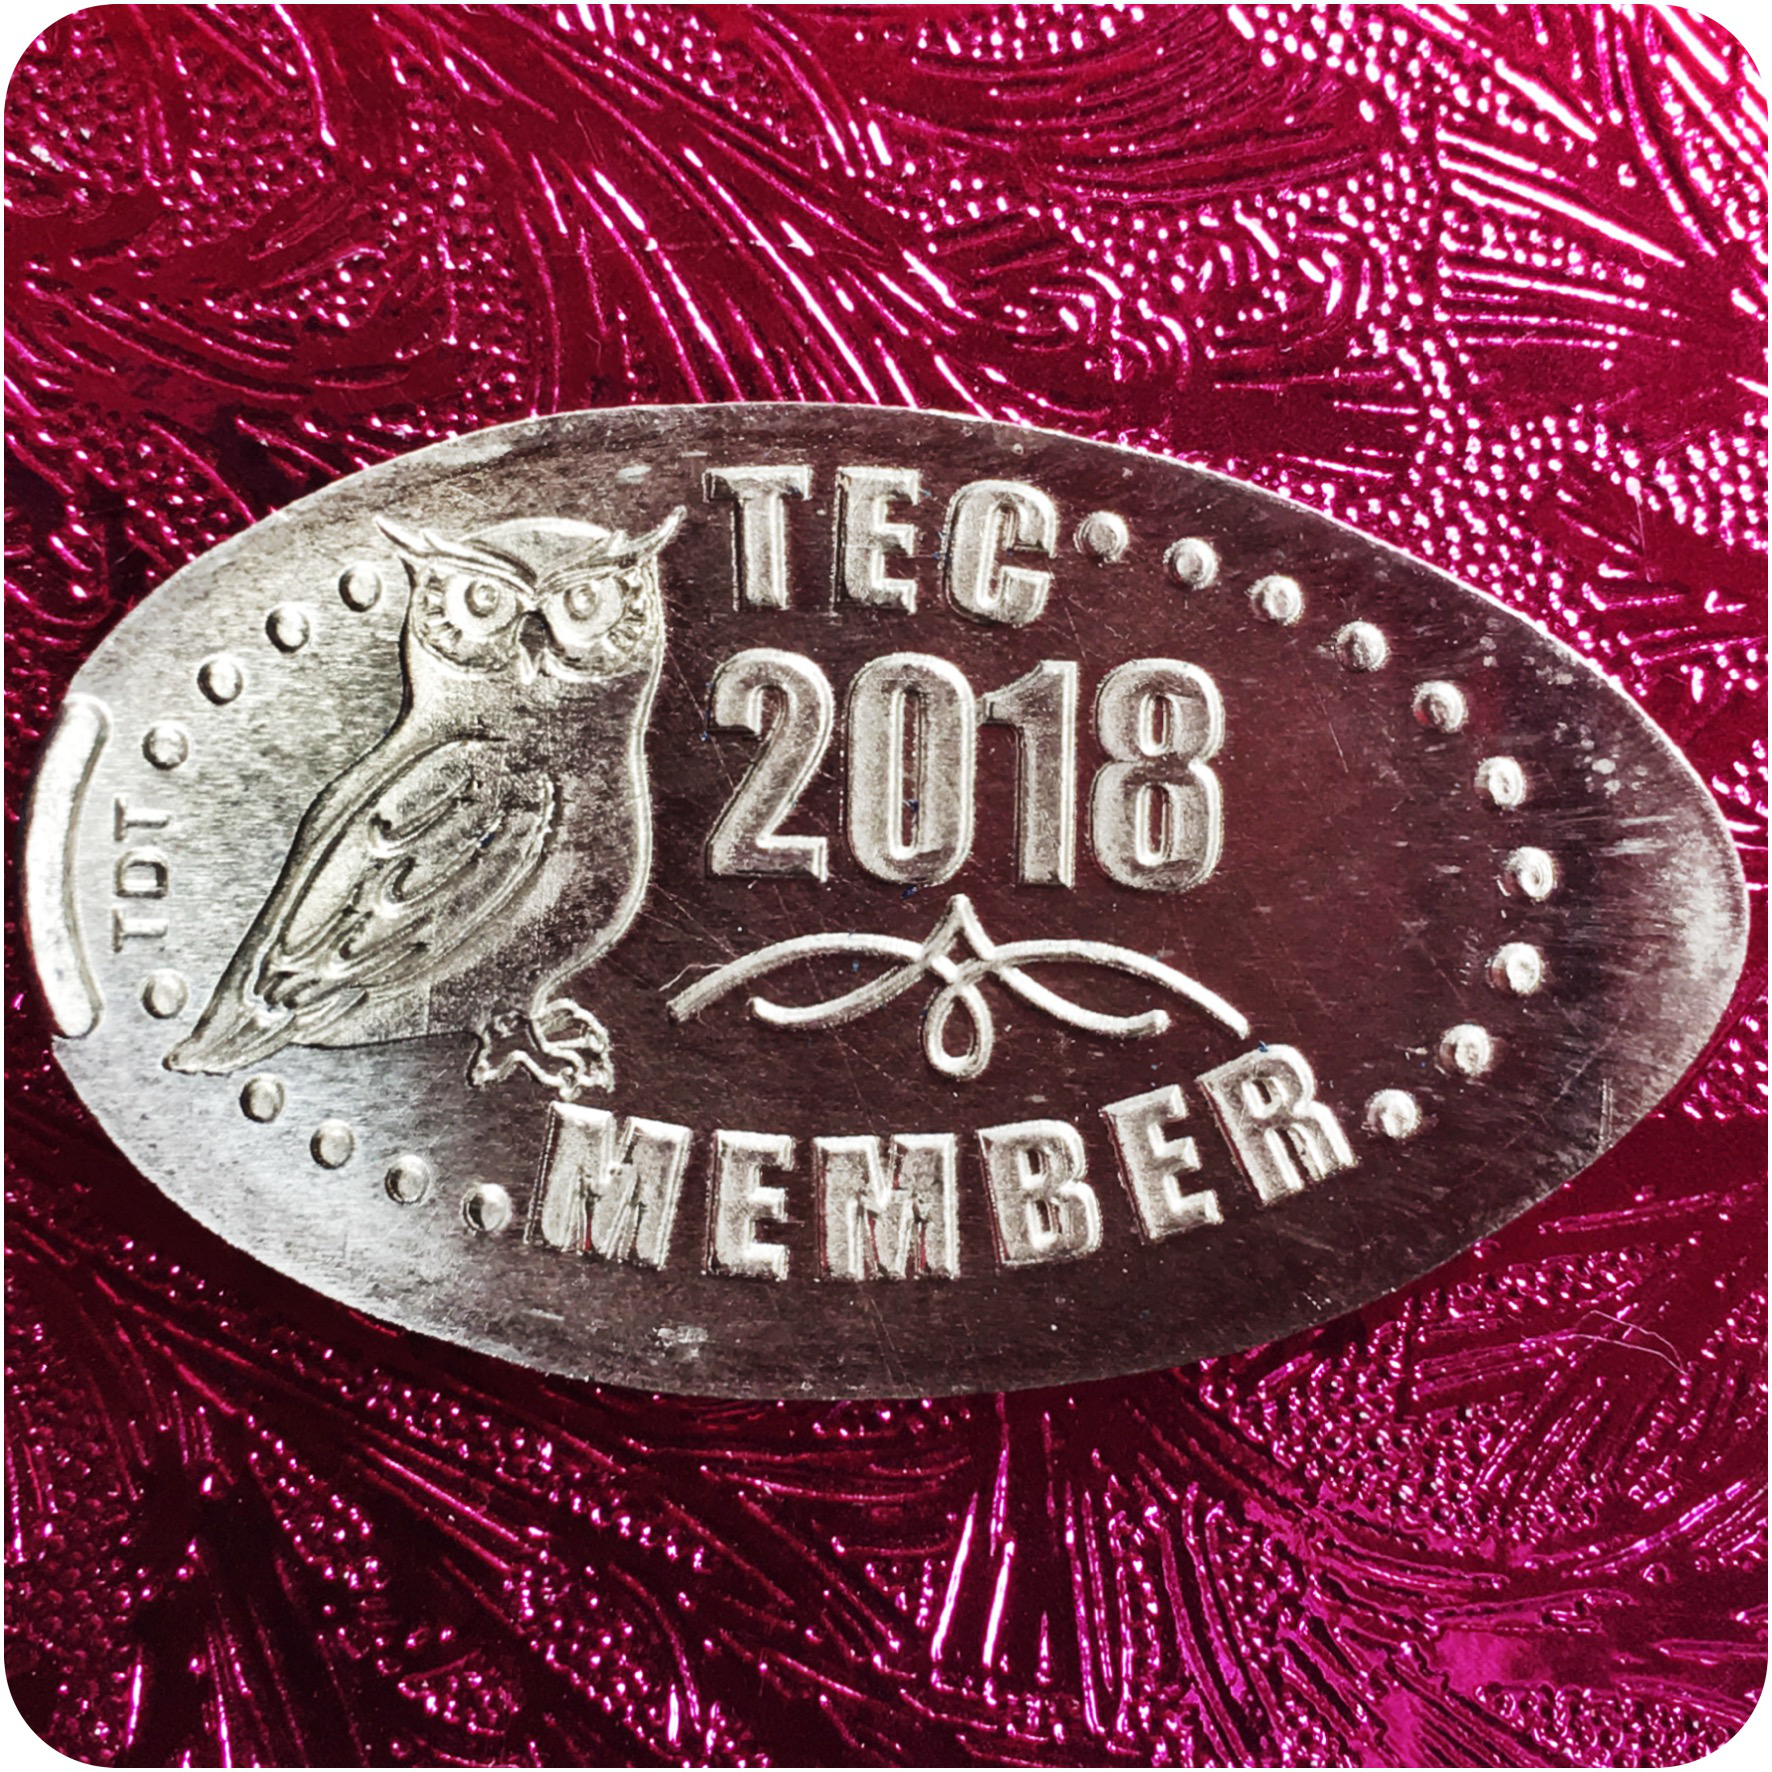 The Elongated Collectors (TEC) Member 2018